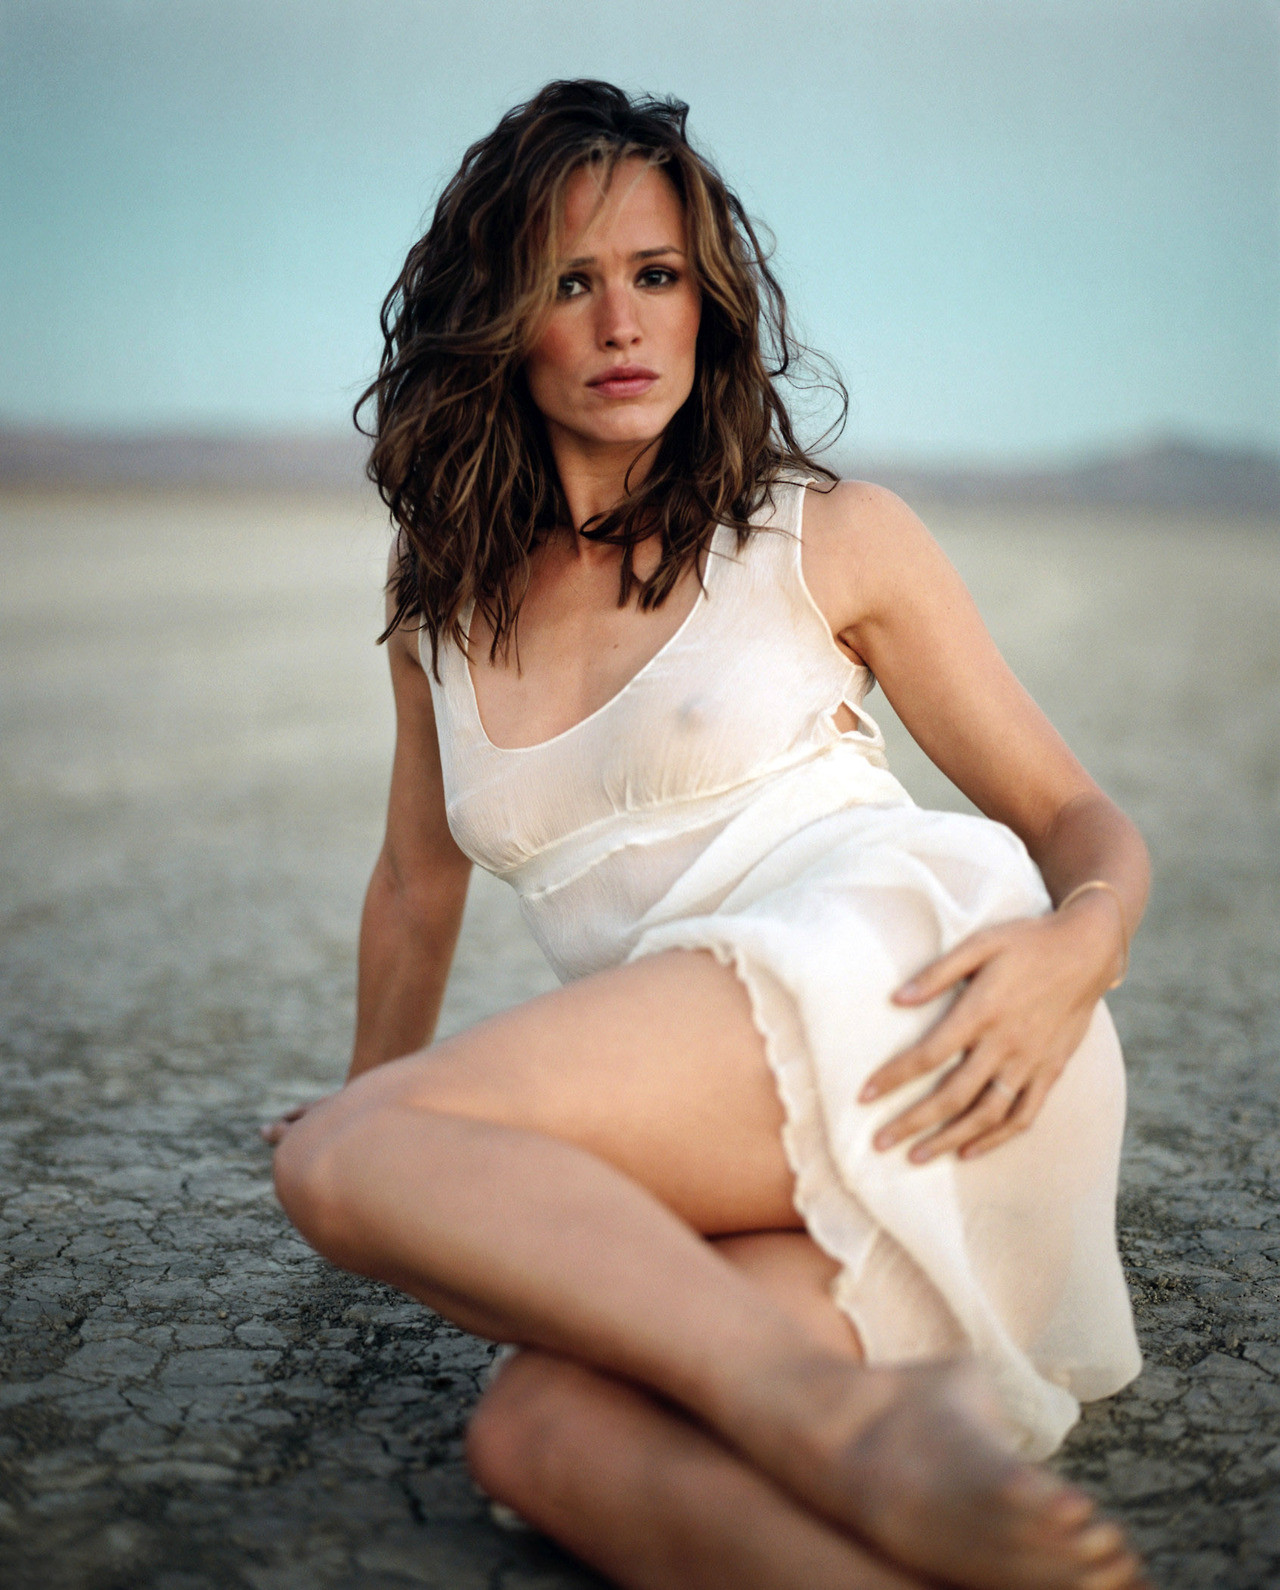 Jennifer garner so hot